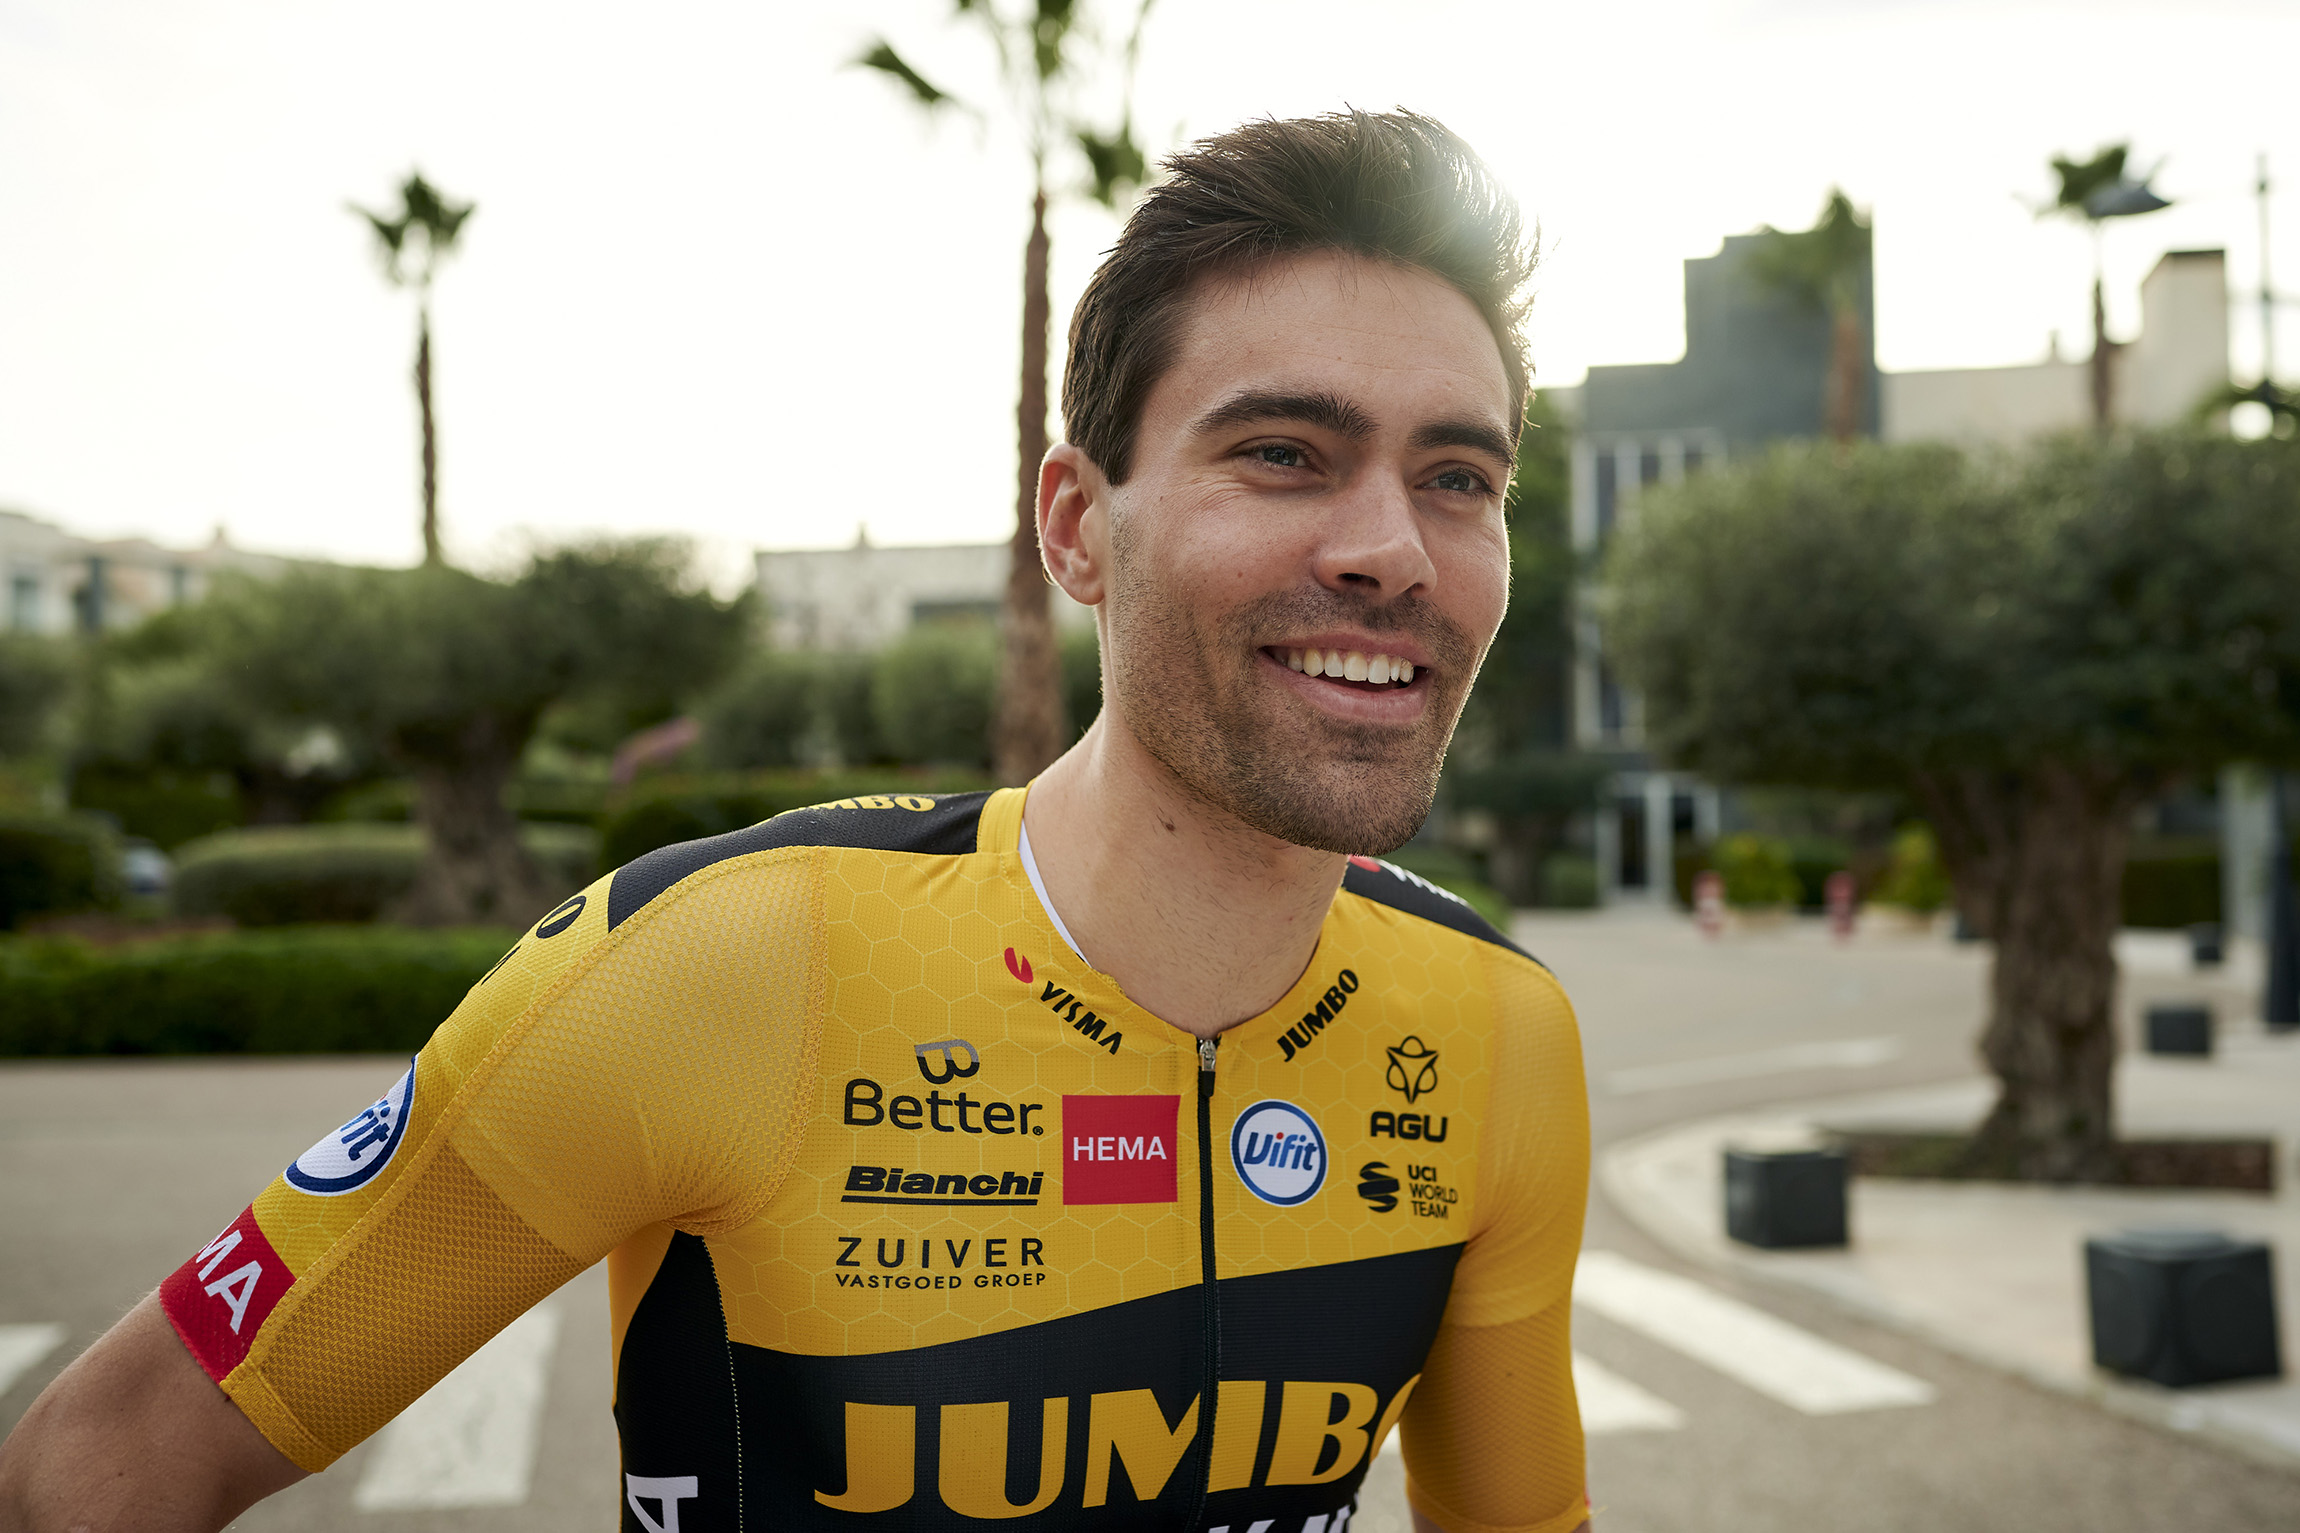 Tom Dumoulin con parásitos en su intestino retrasa su debut con el Jumbo Visma